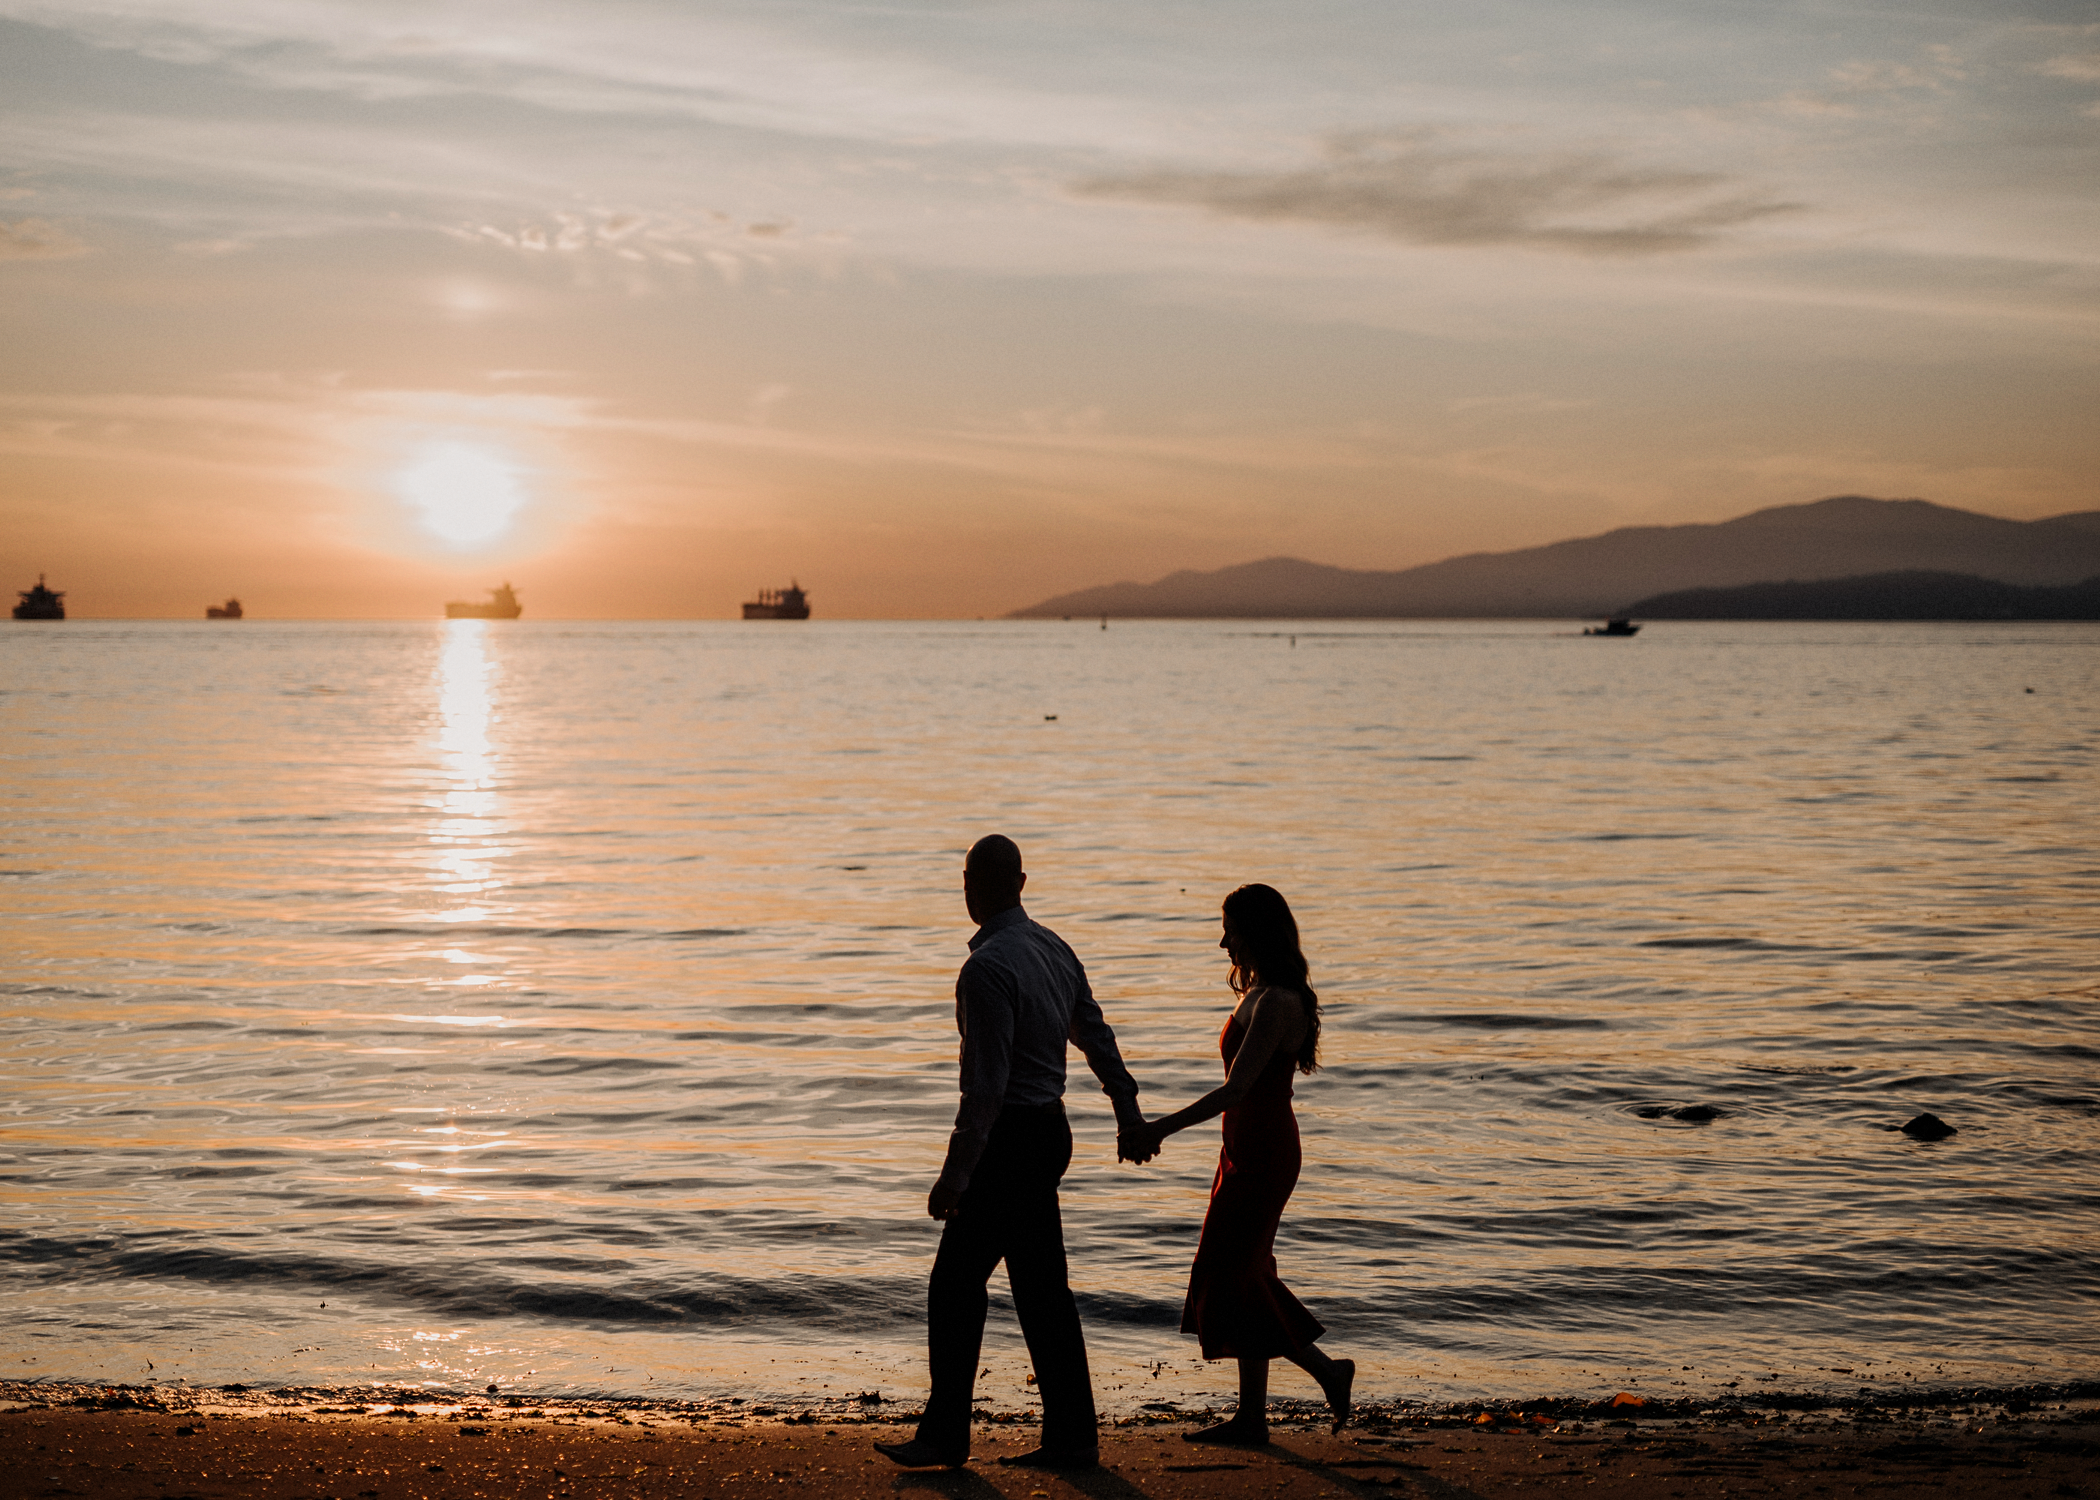 016-kaoverii-silva-AJ-prewedding-vancouver-photography-blog.png